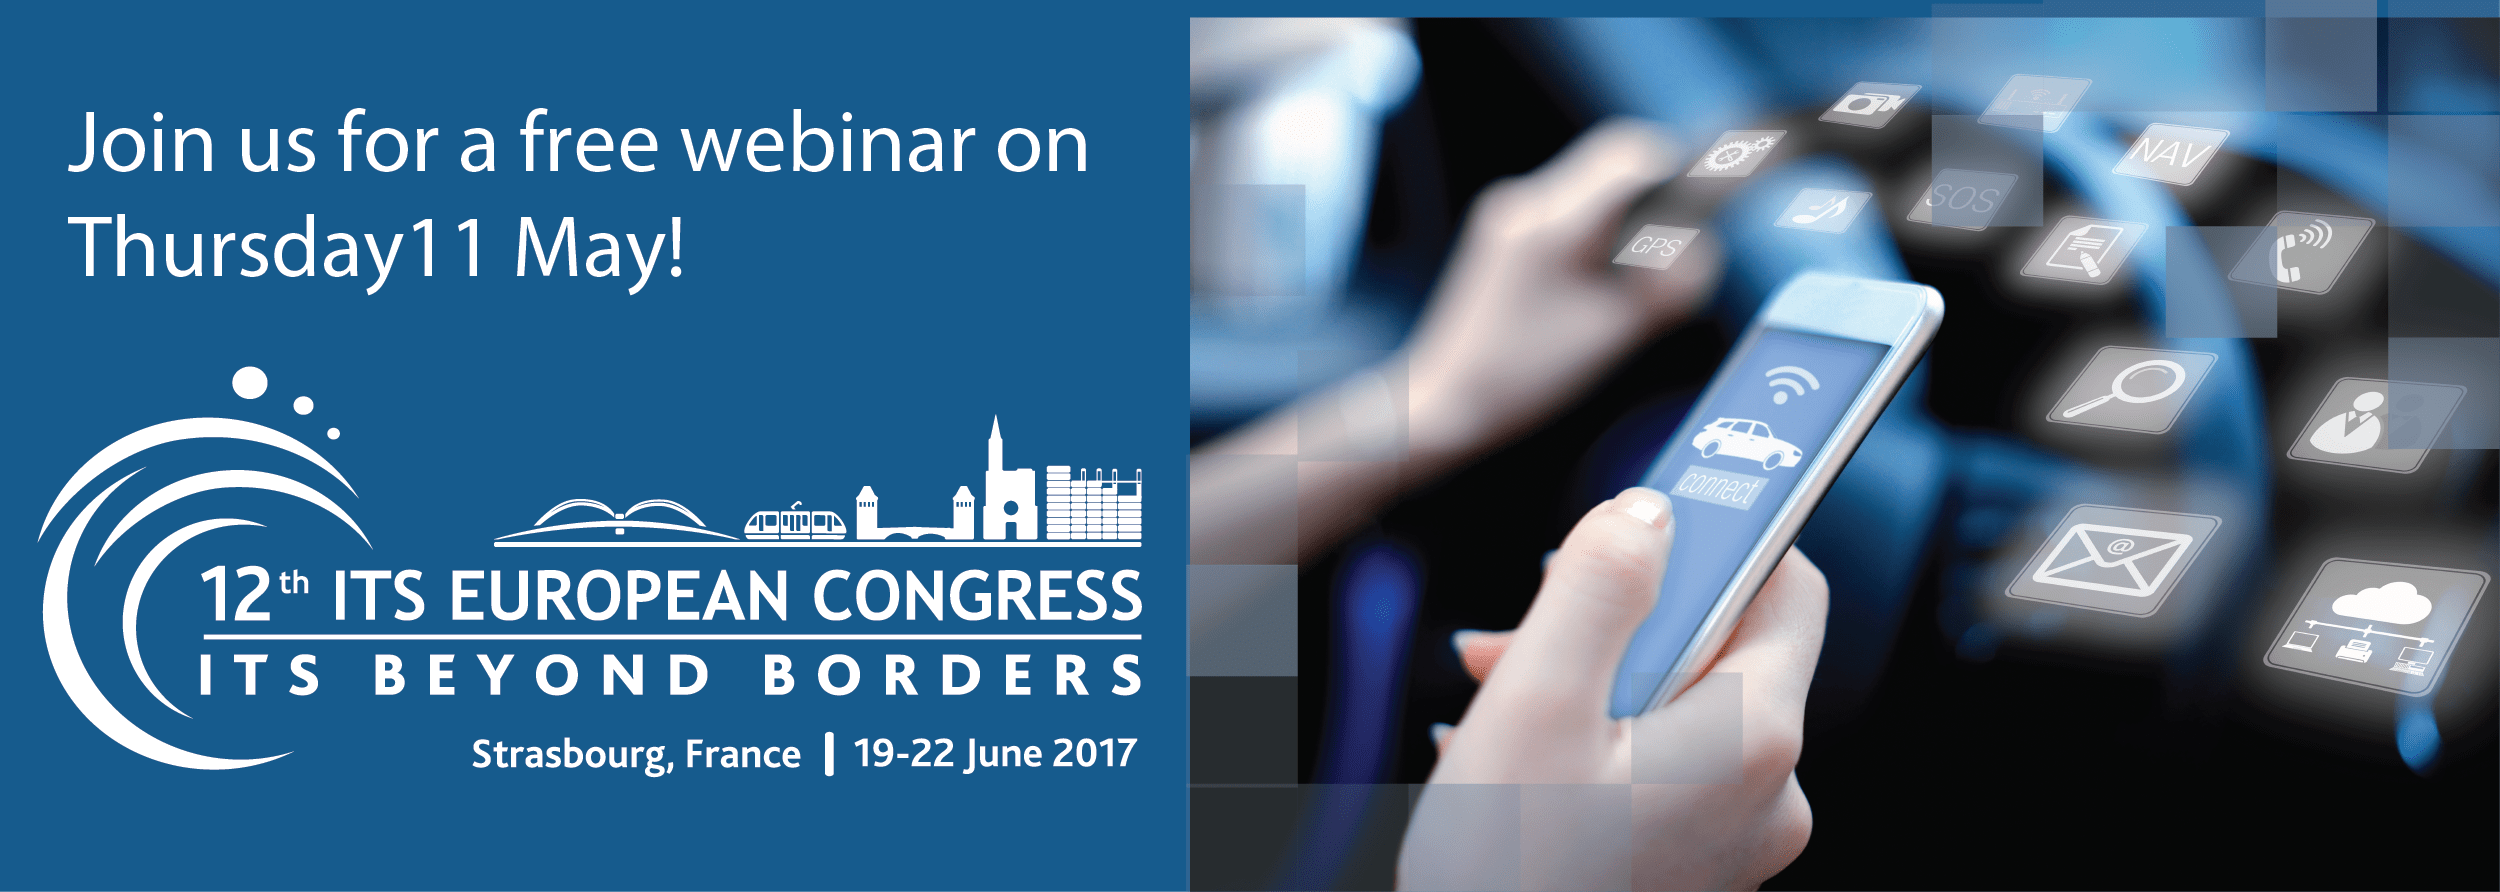 Webinar ahead of ITS European Congress